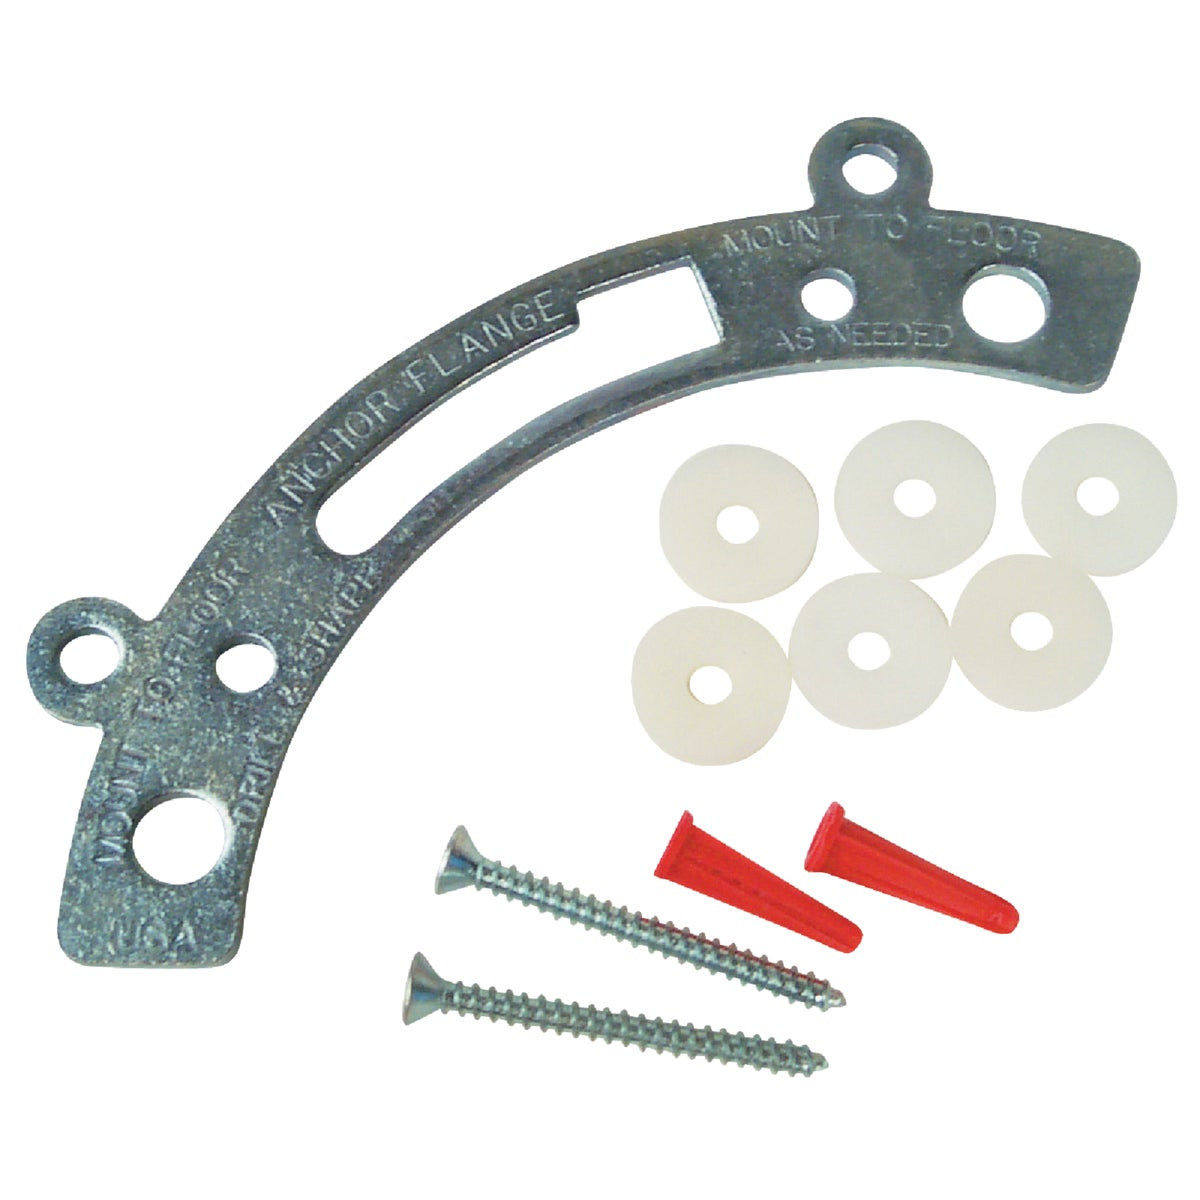 ANCHOR FLANGE REPAIR KIT - 462489 by Do it Best